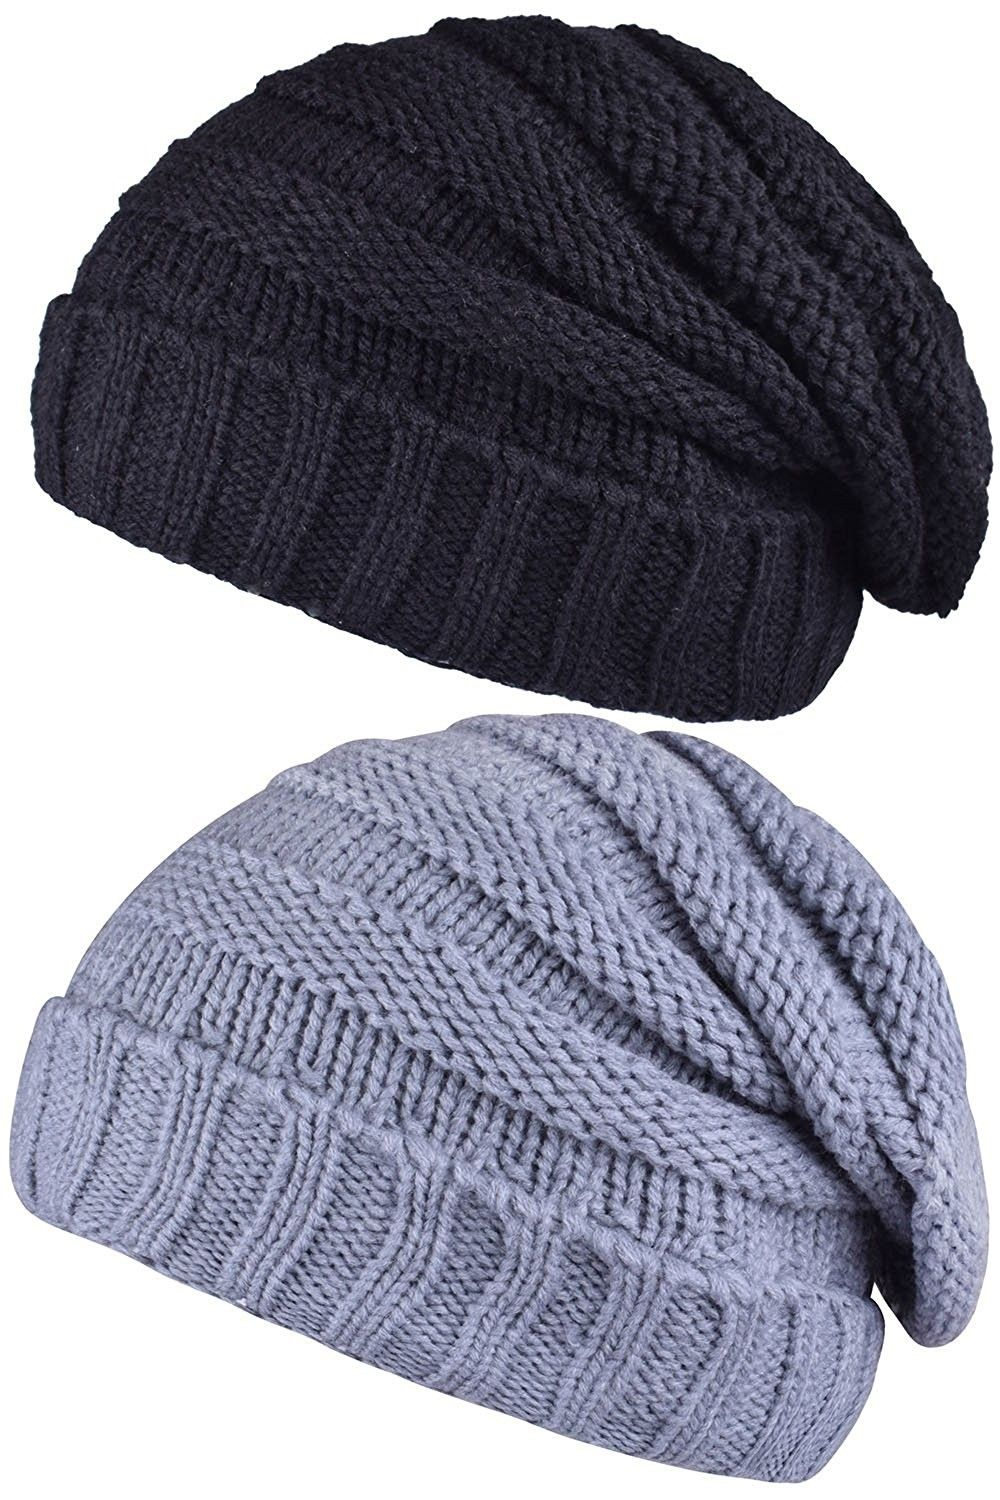 7a979cb8b02 Adult Slouch Beanie Hat Warm Knit Winter Hat Outdoor Skull Cap Men s ...